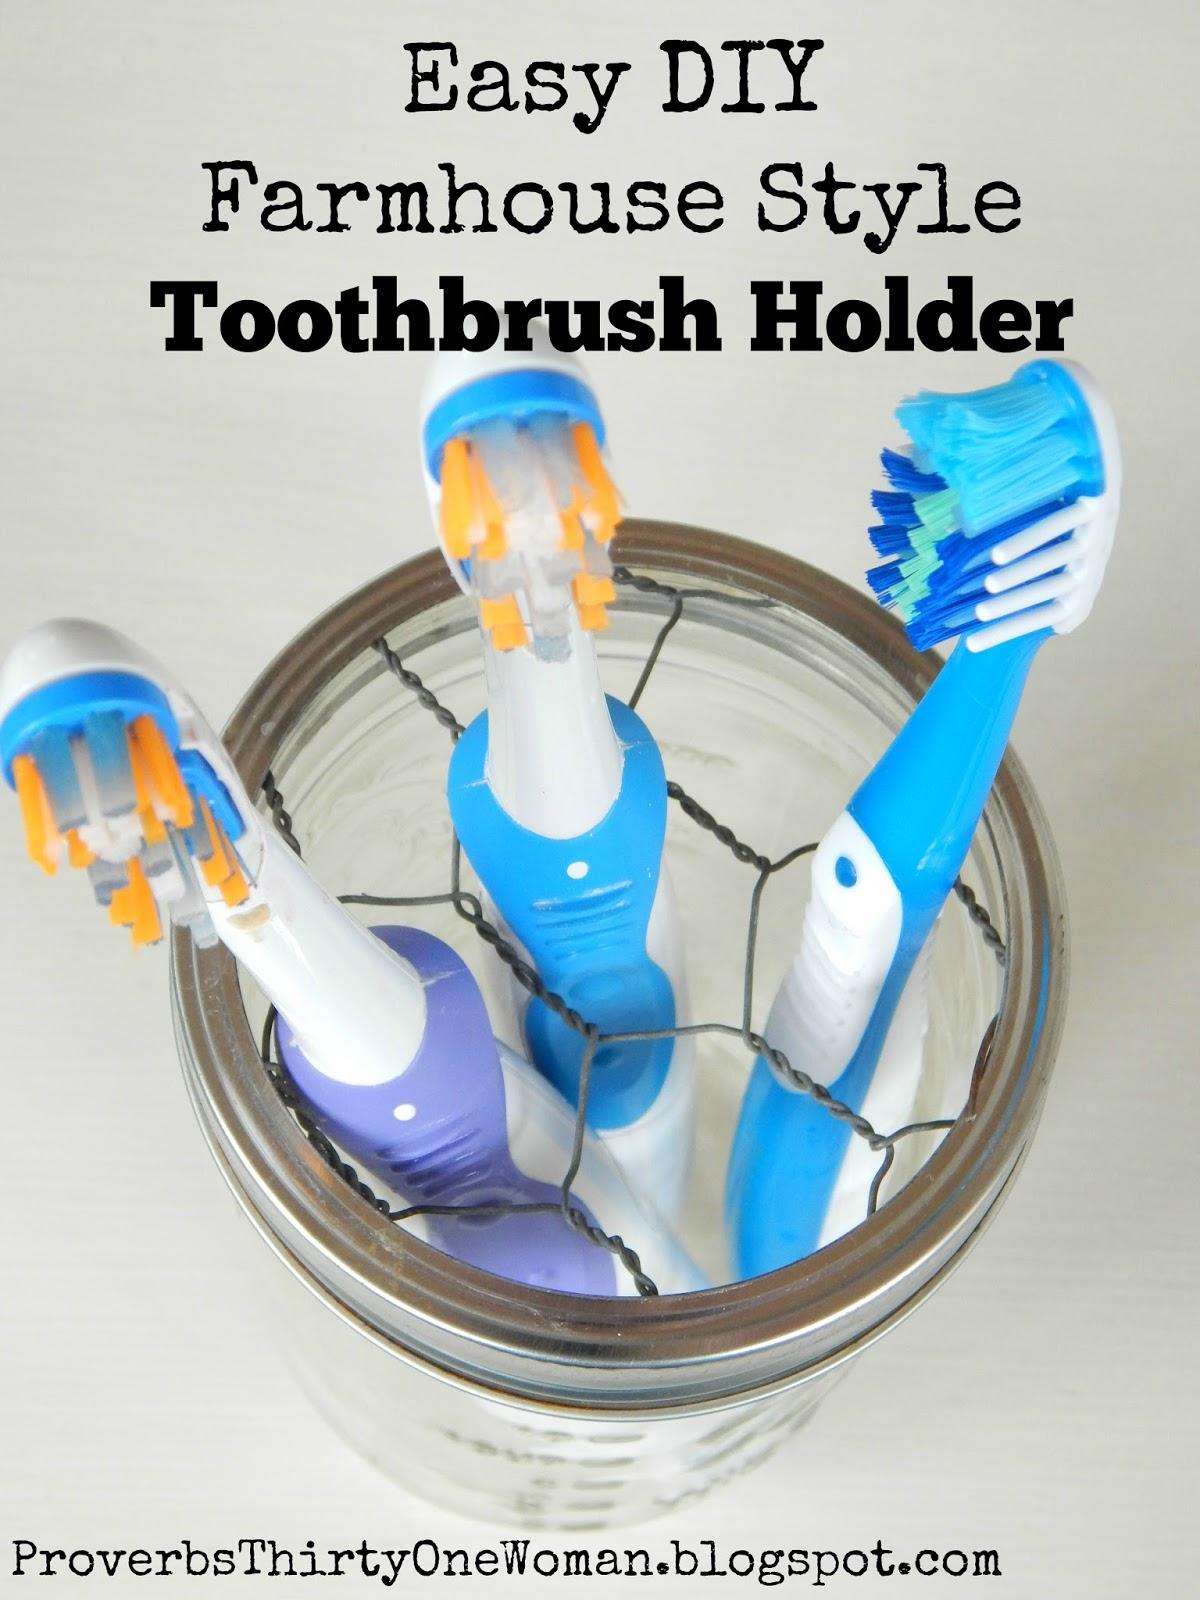 Easy Diy Farmhouse Style Toothbrush Holder Proverbs 31 Woman